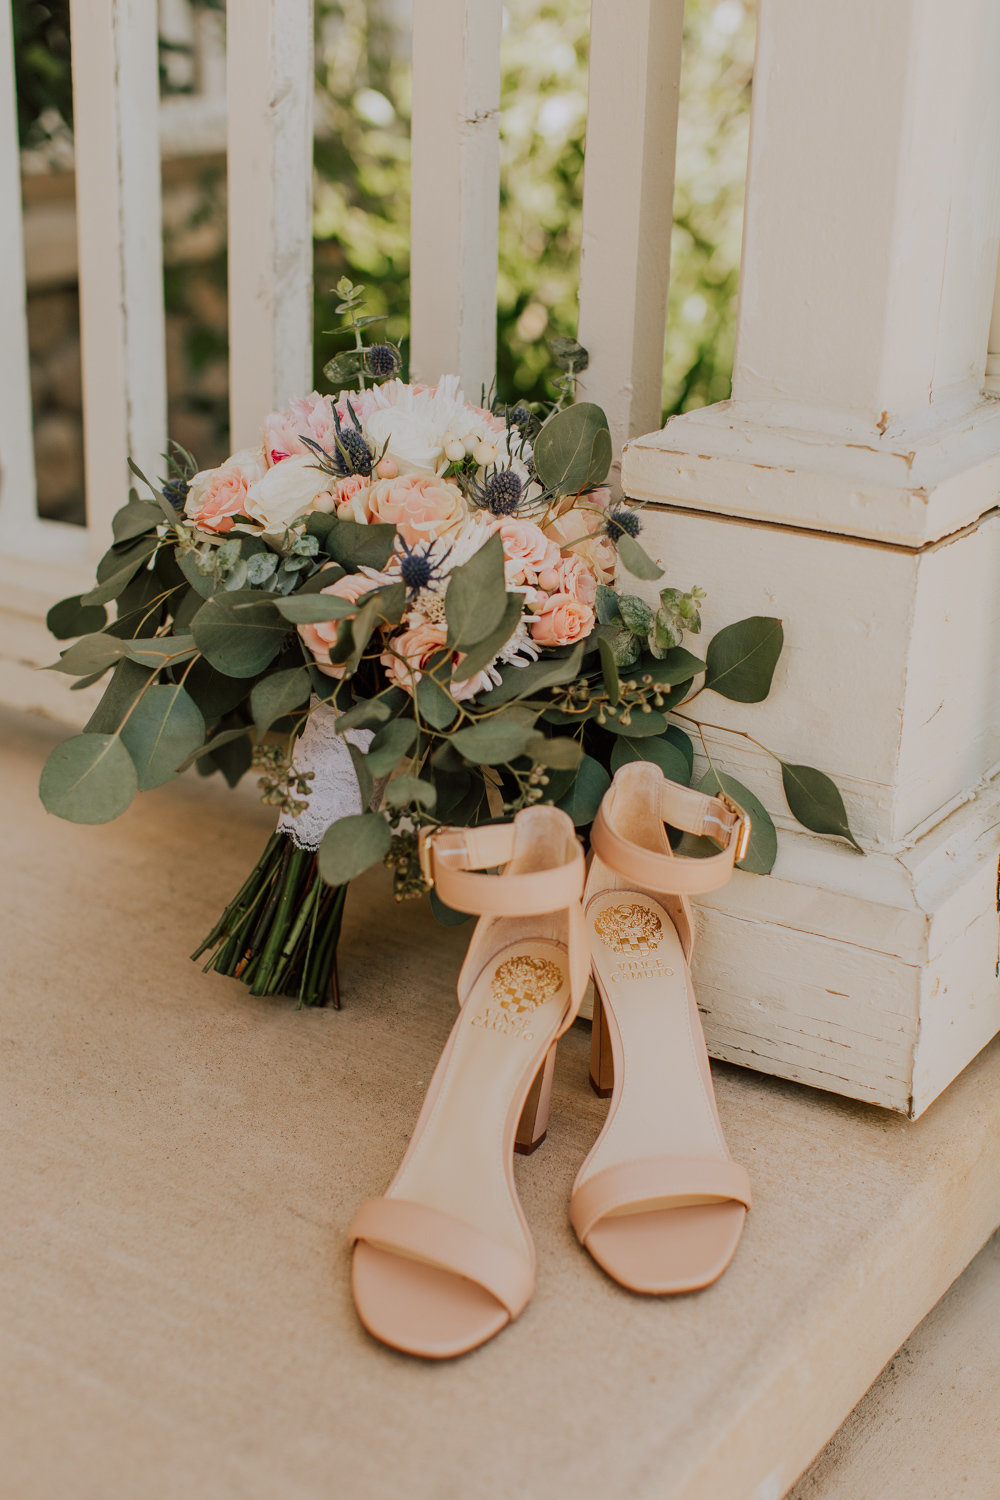 Brianna Broyles_Grace Maralyn Estate_San Luis Obispo Wedding Photographer-15